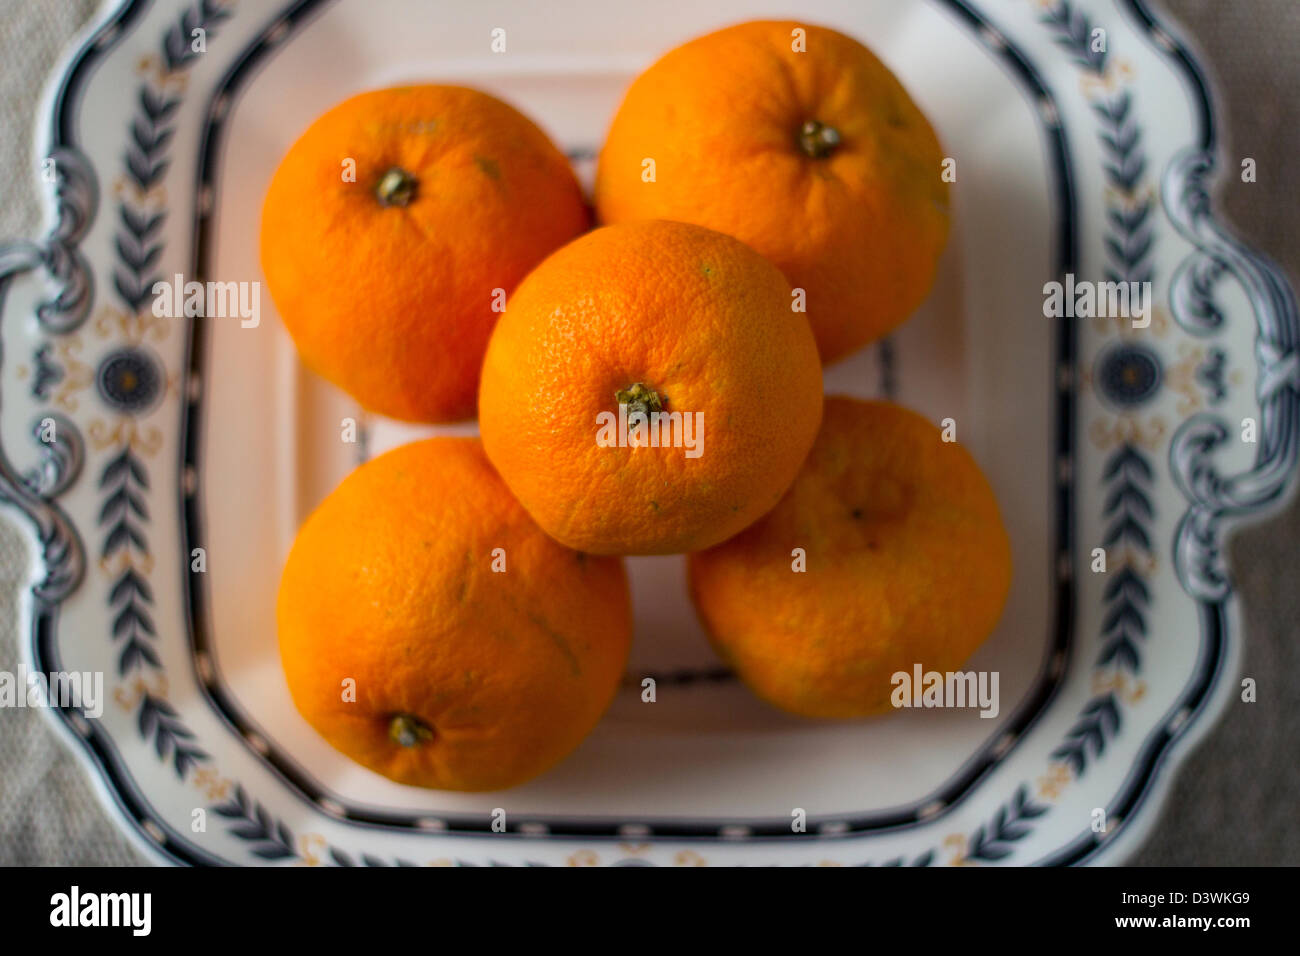 Oranges on a vintage Wedgewood plate. Stock Photo